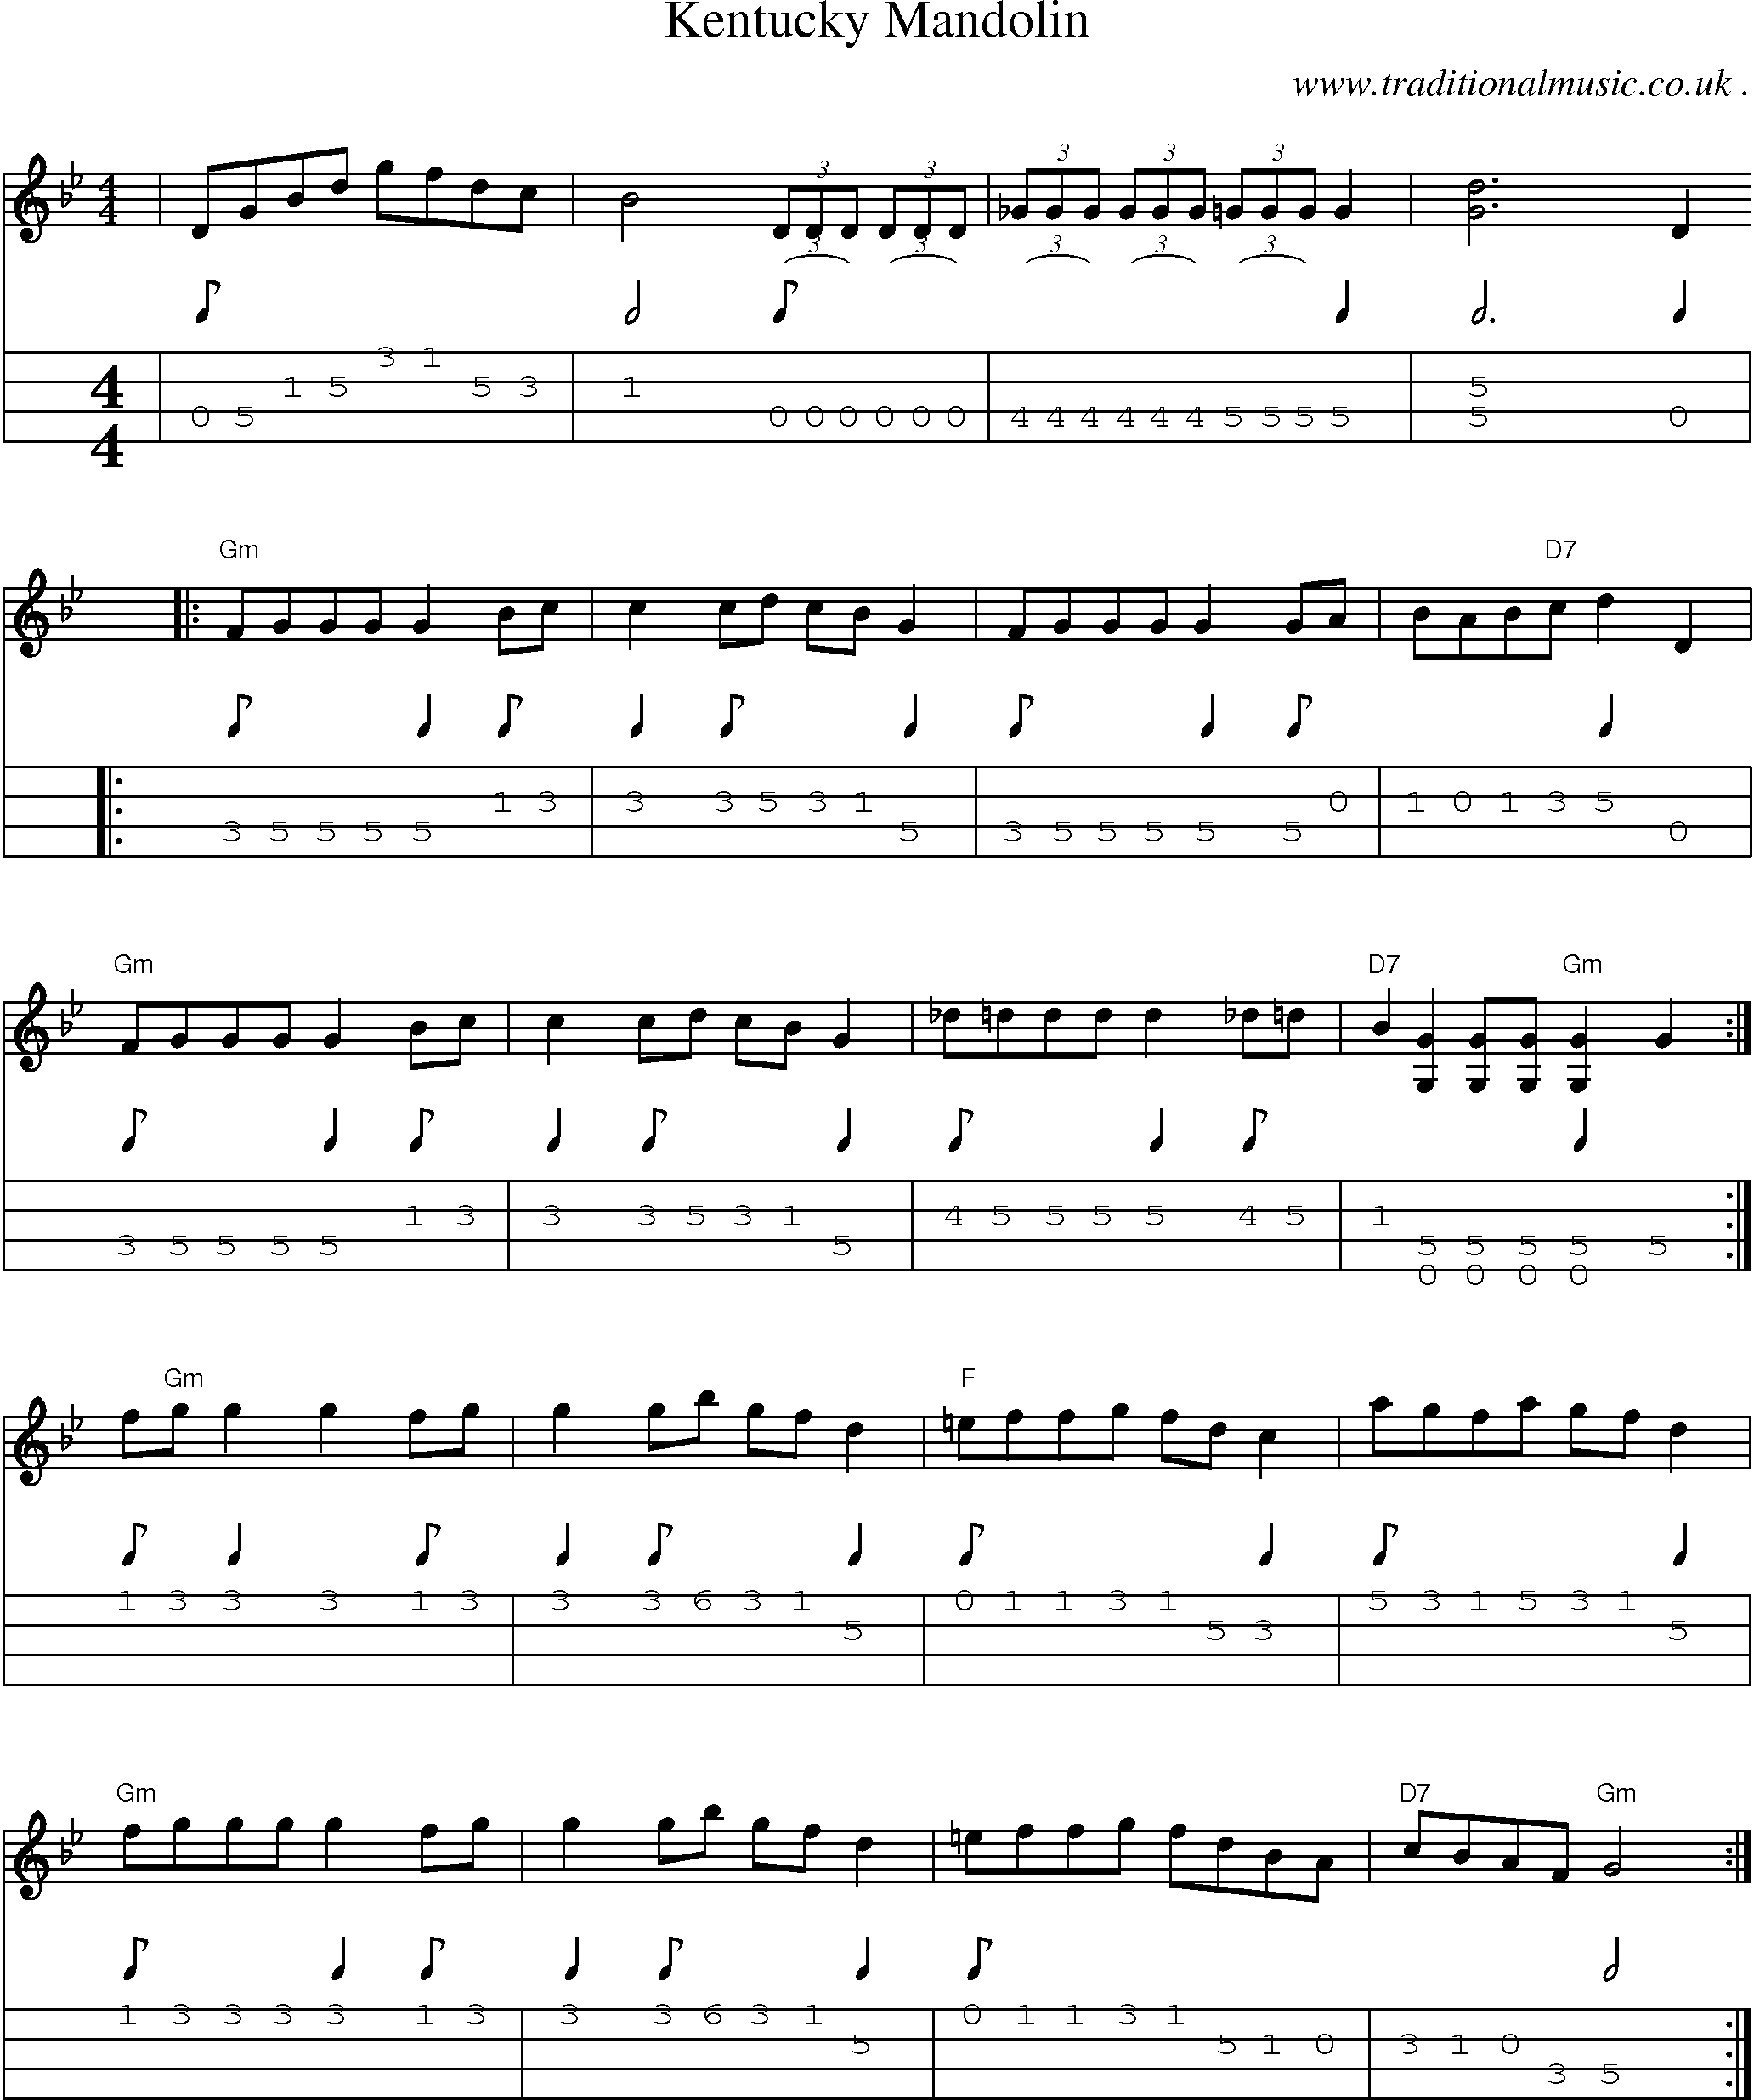 Common session tunes, Sheetmusic, Tabs for Mandolin, midi and mp3 for Kentucky Mandolin